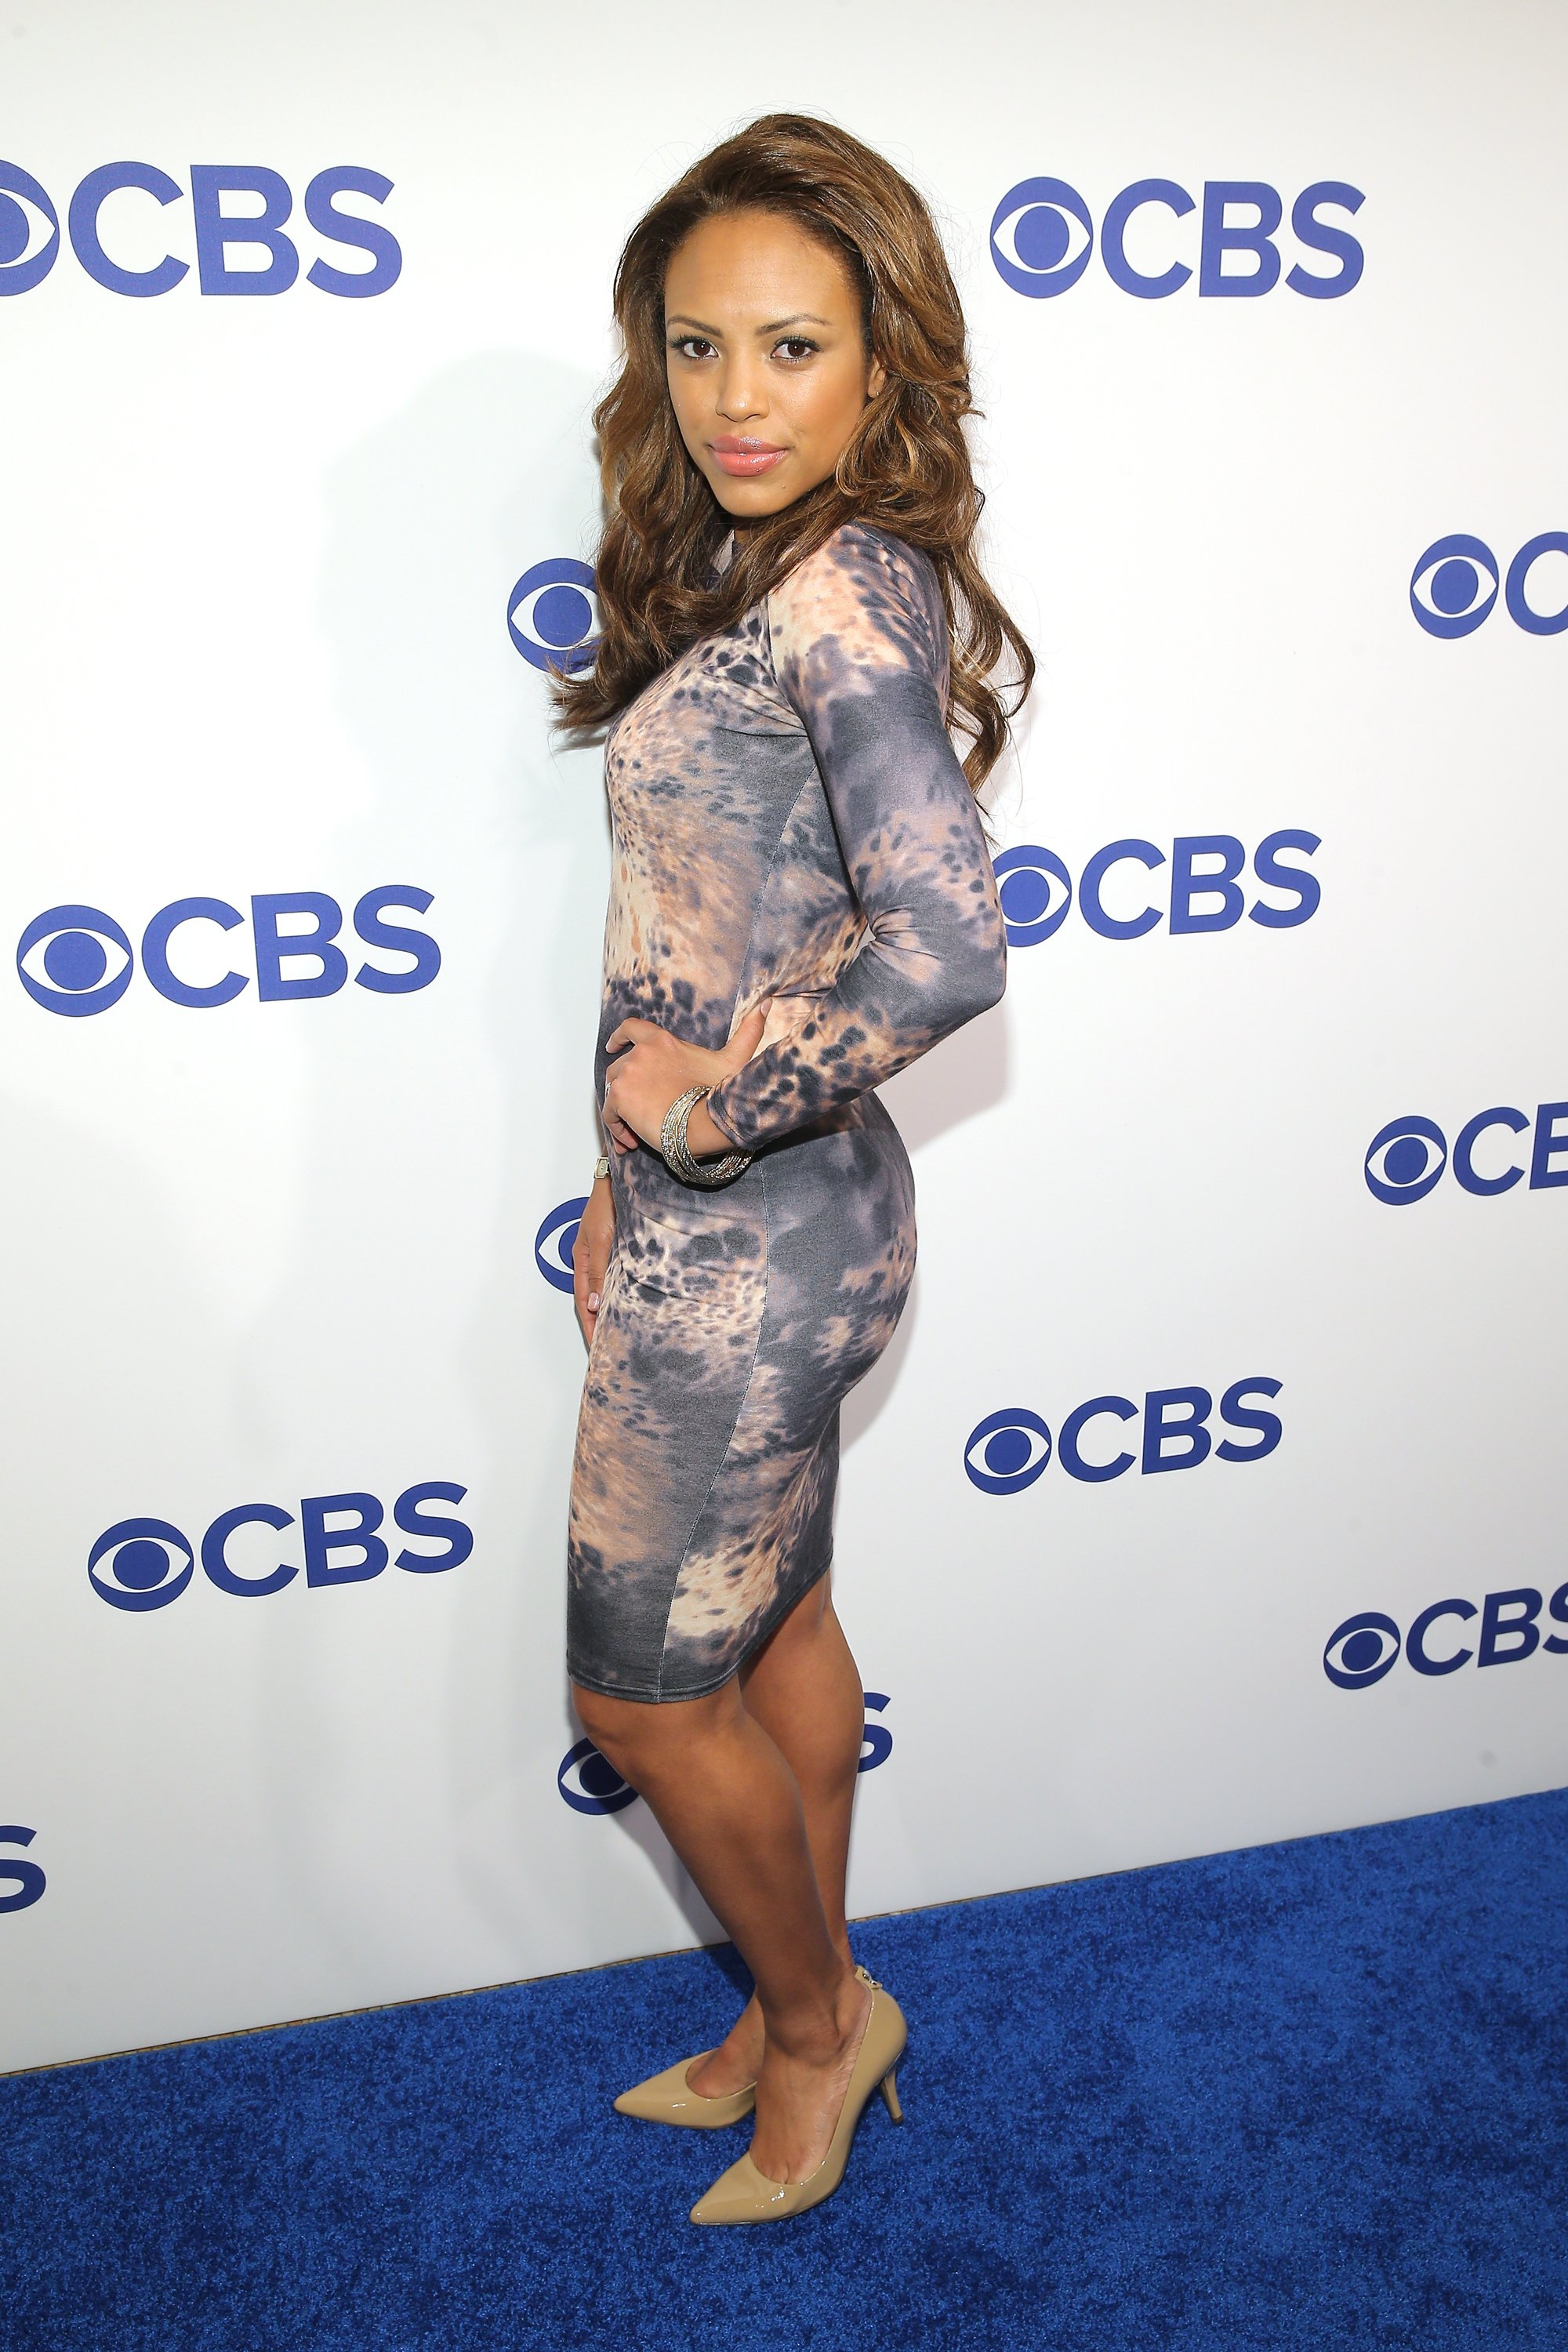 Jaime Lee Kirchner attends the 2016 CBS Upfront at The Plaza on May 18, 2016, in New York City. | Source: Getty Images.